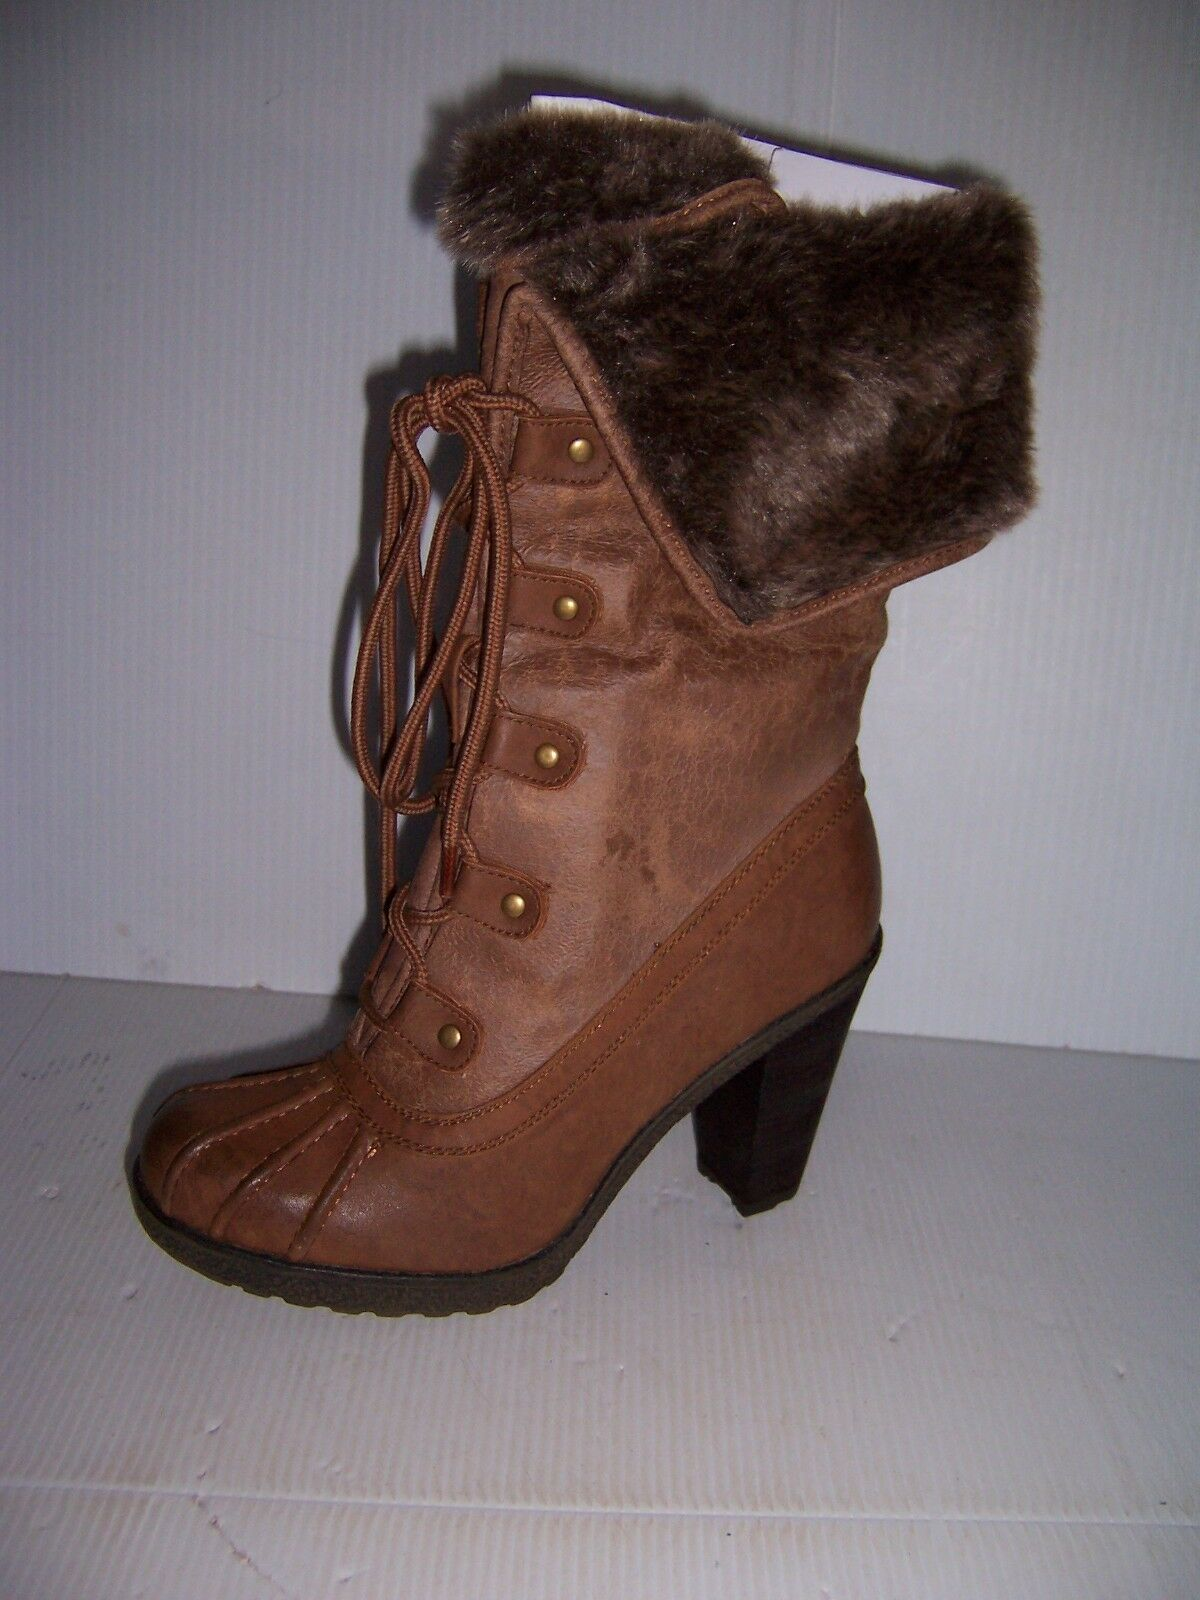 CALL IT SPRING COGNAC MARredTE WOMAN'S BROWN HIGH HEEL  BOOTS  SIZE 7 NEW